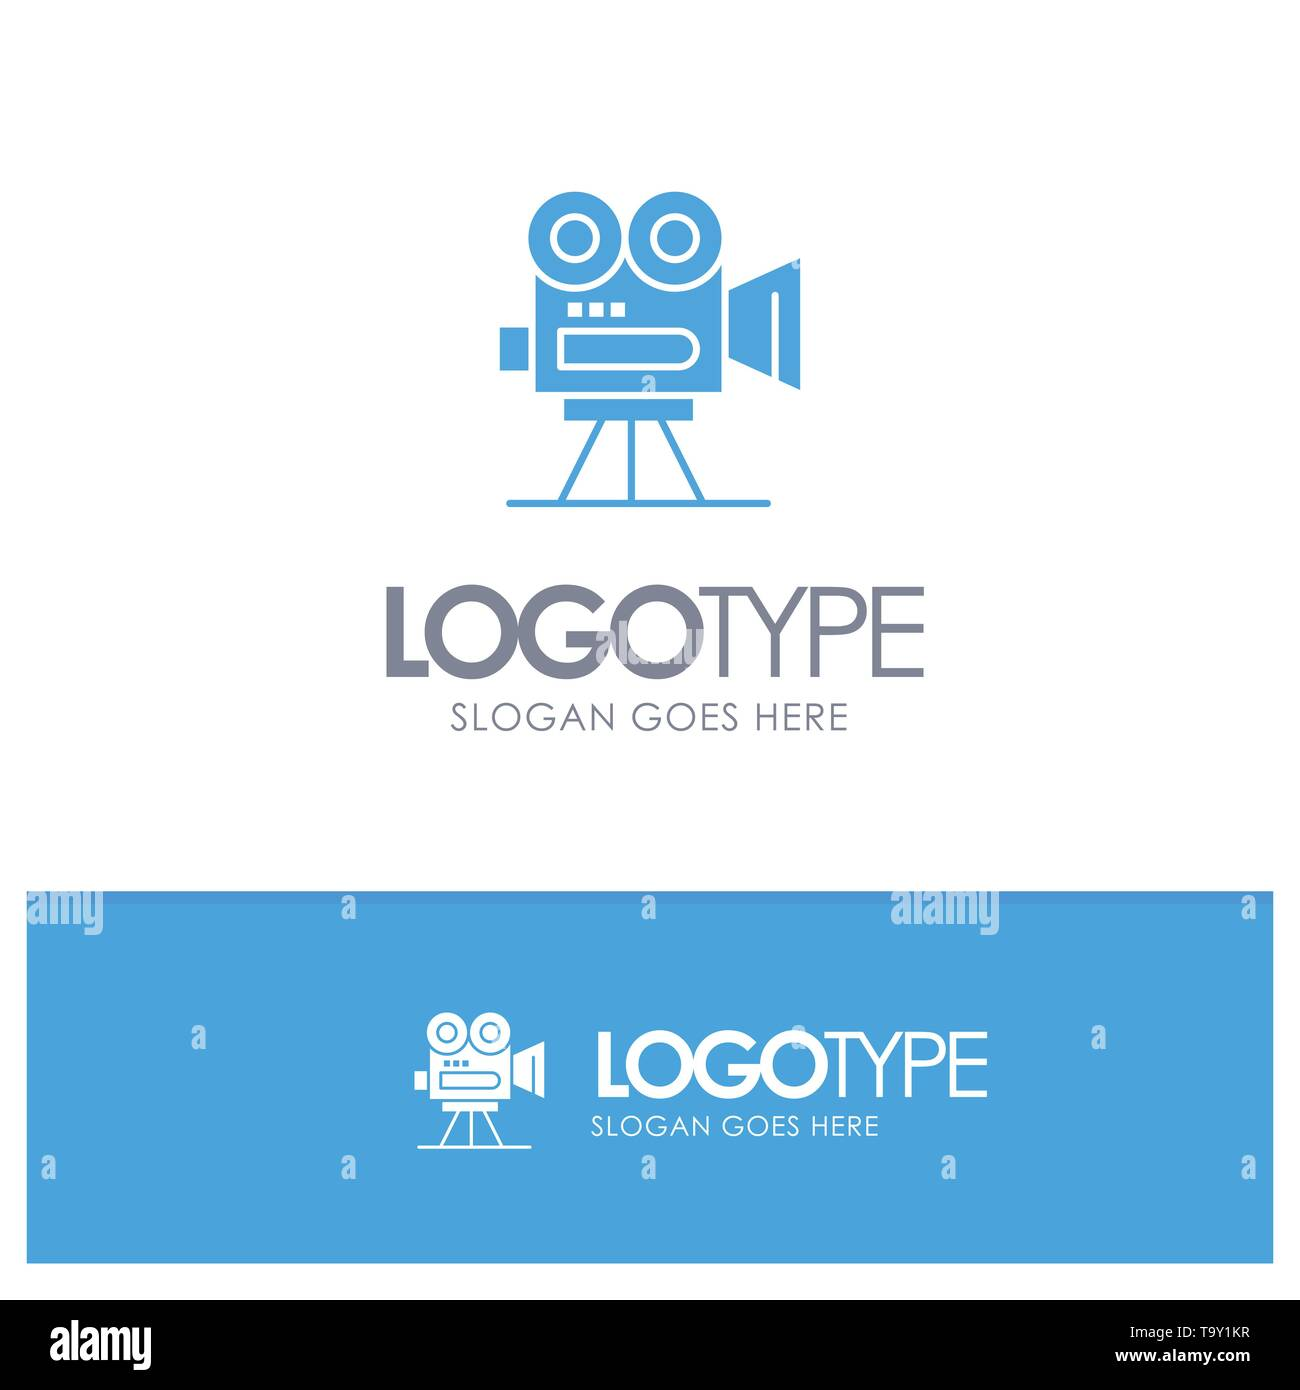 Camera, Capture, Film, Movie, Professional Blue Solid Logo with place for tagline - Stock Vector